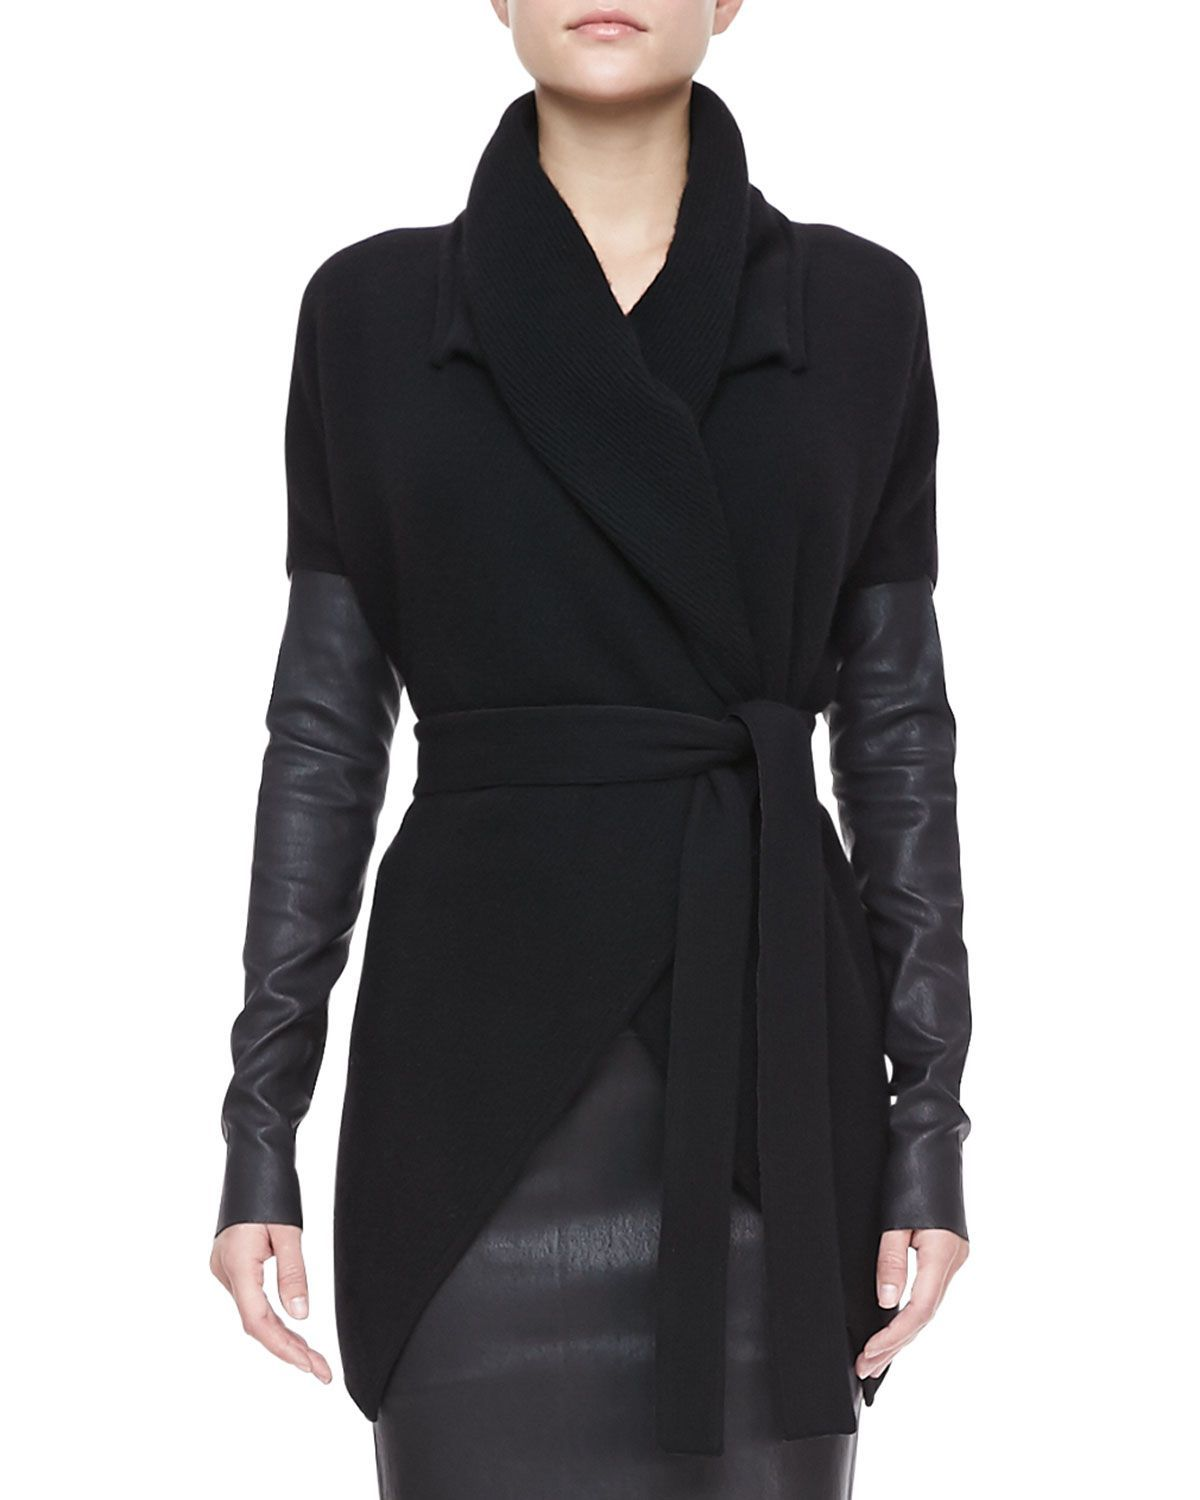 That perfectly cozy leather-sleeved sweater that happens to be Donna Karan.